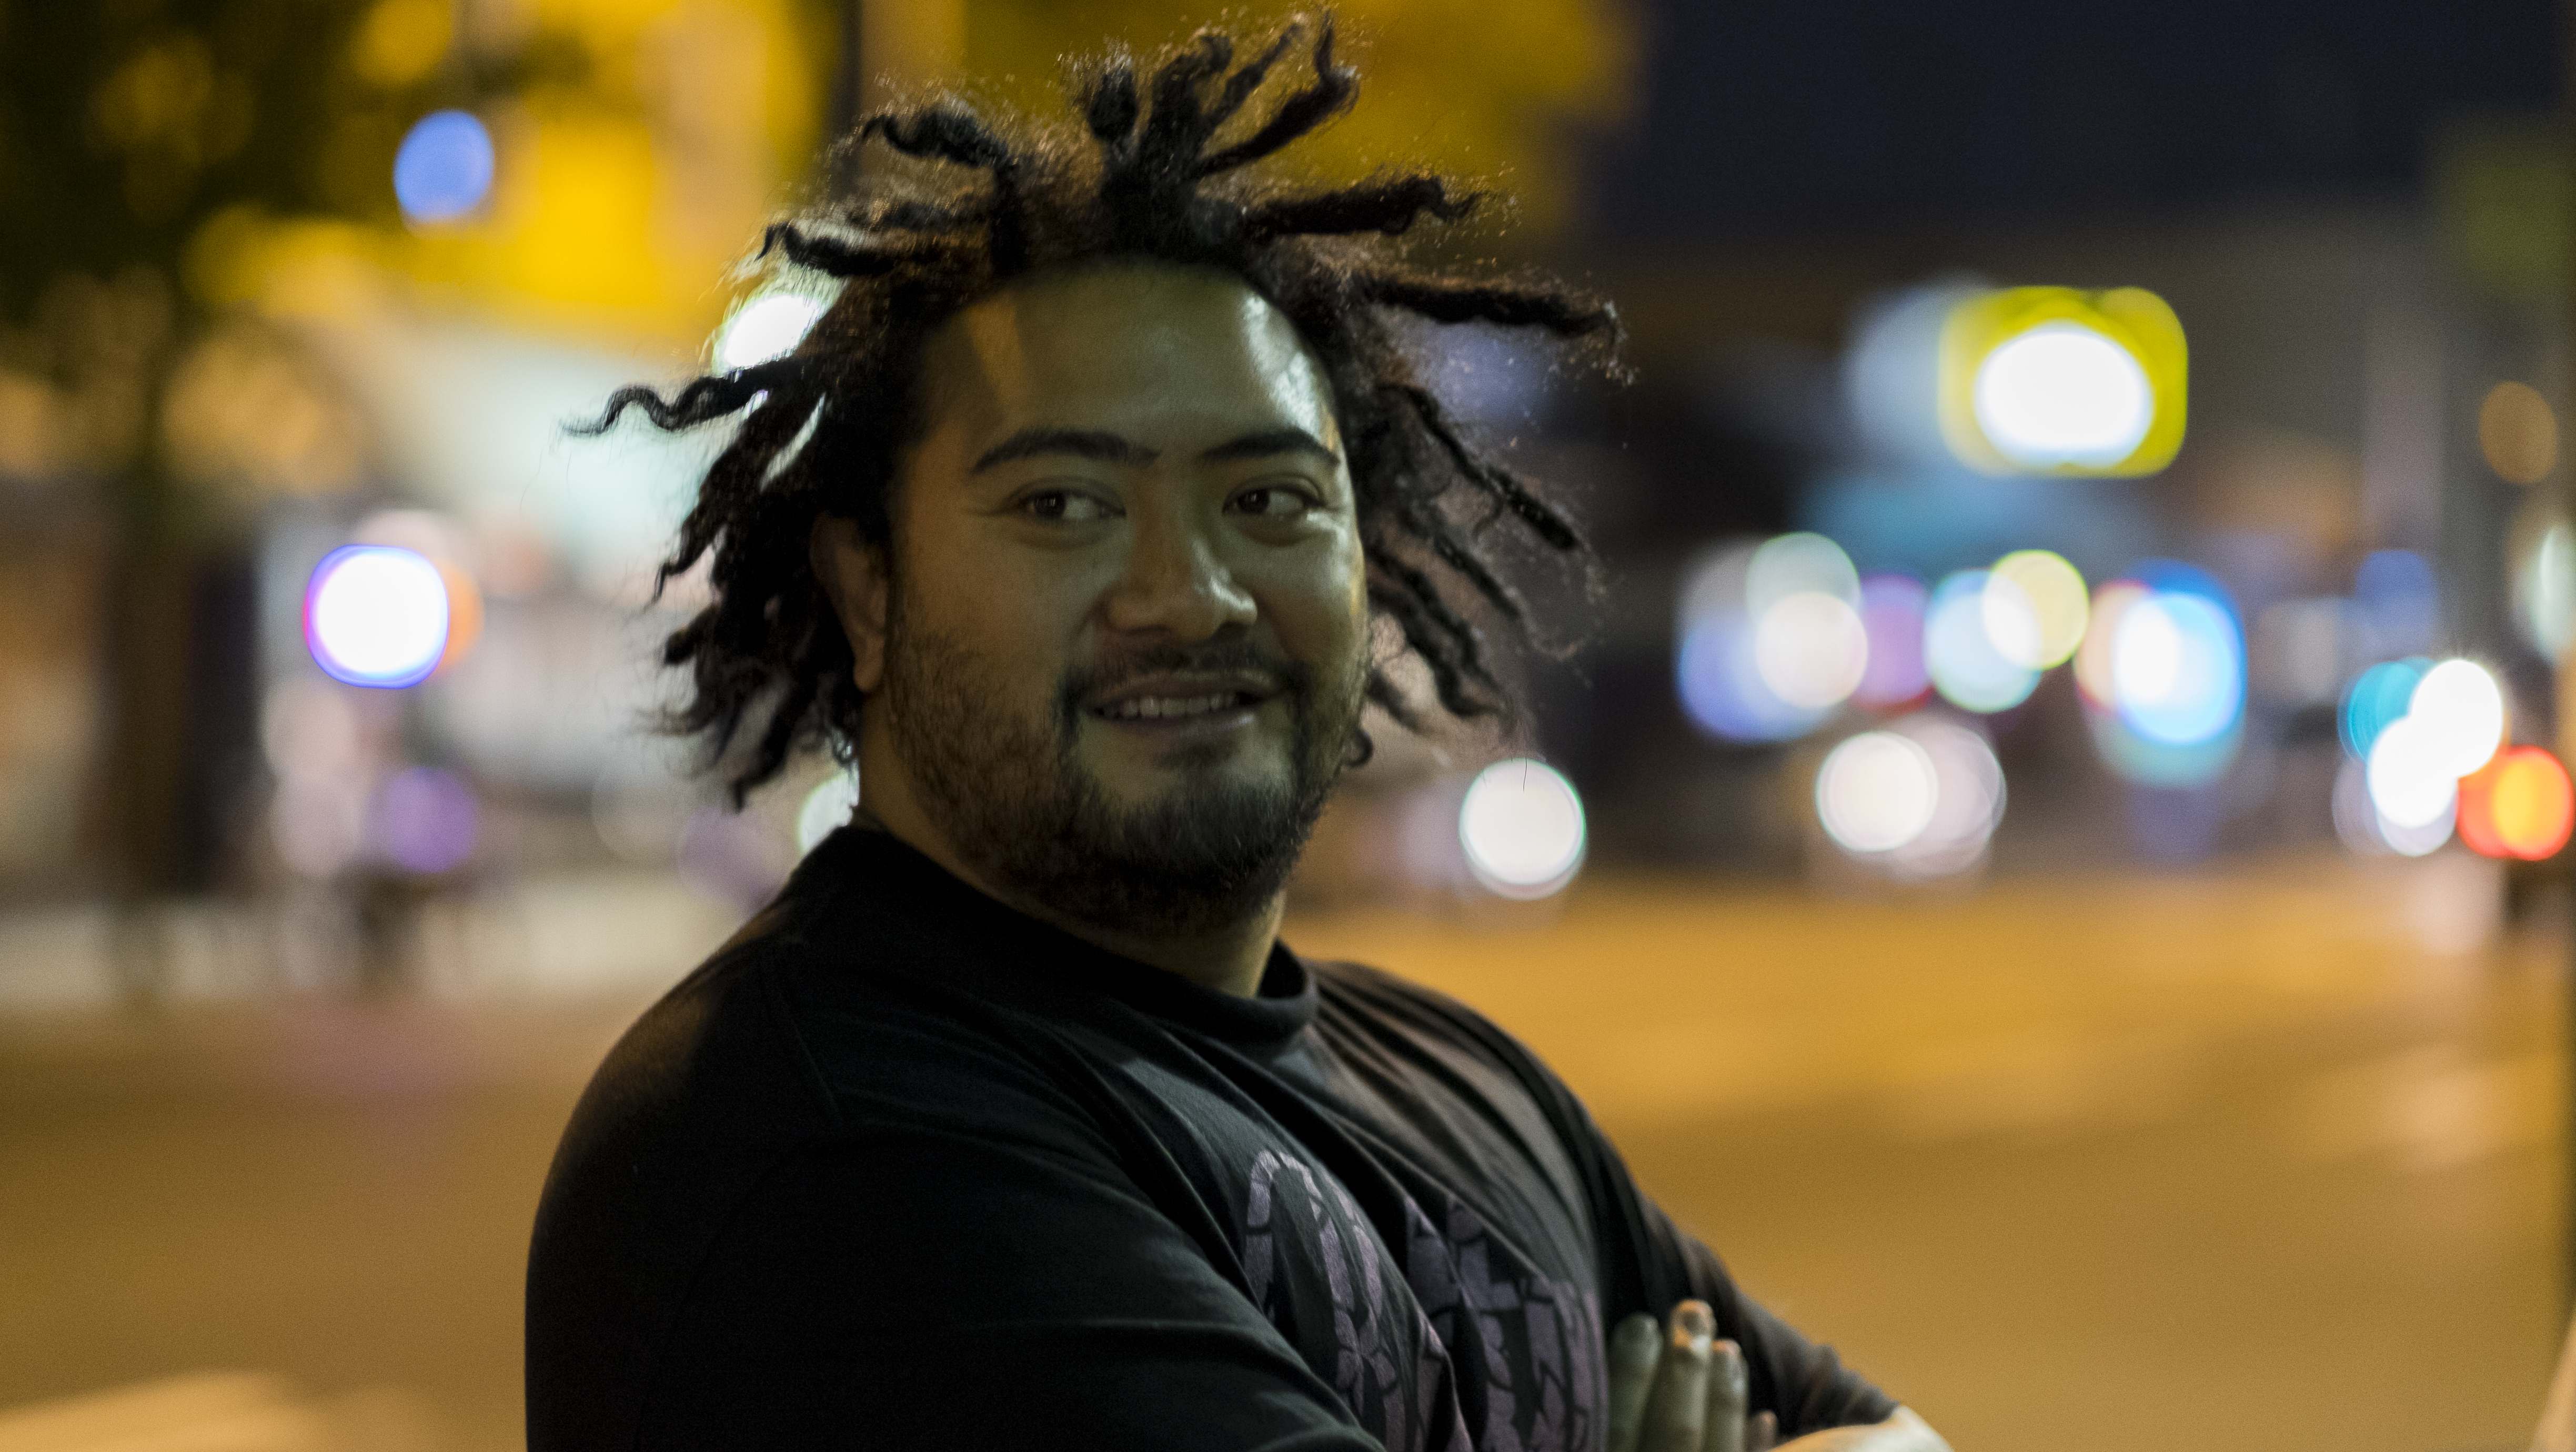 How Tall Is J Boog 2018